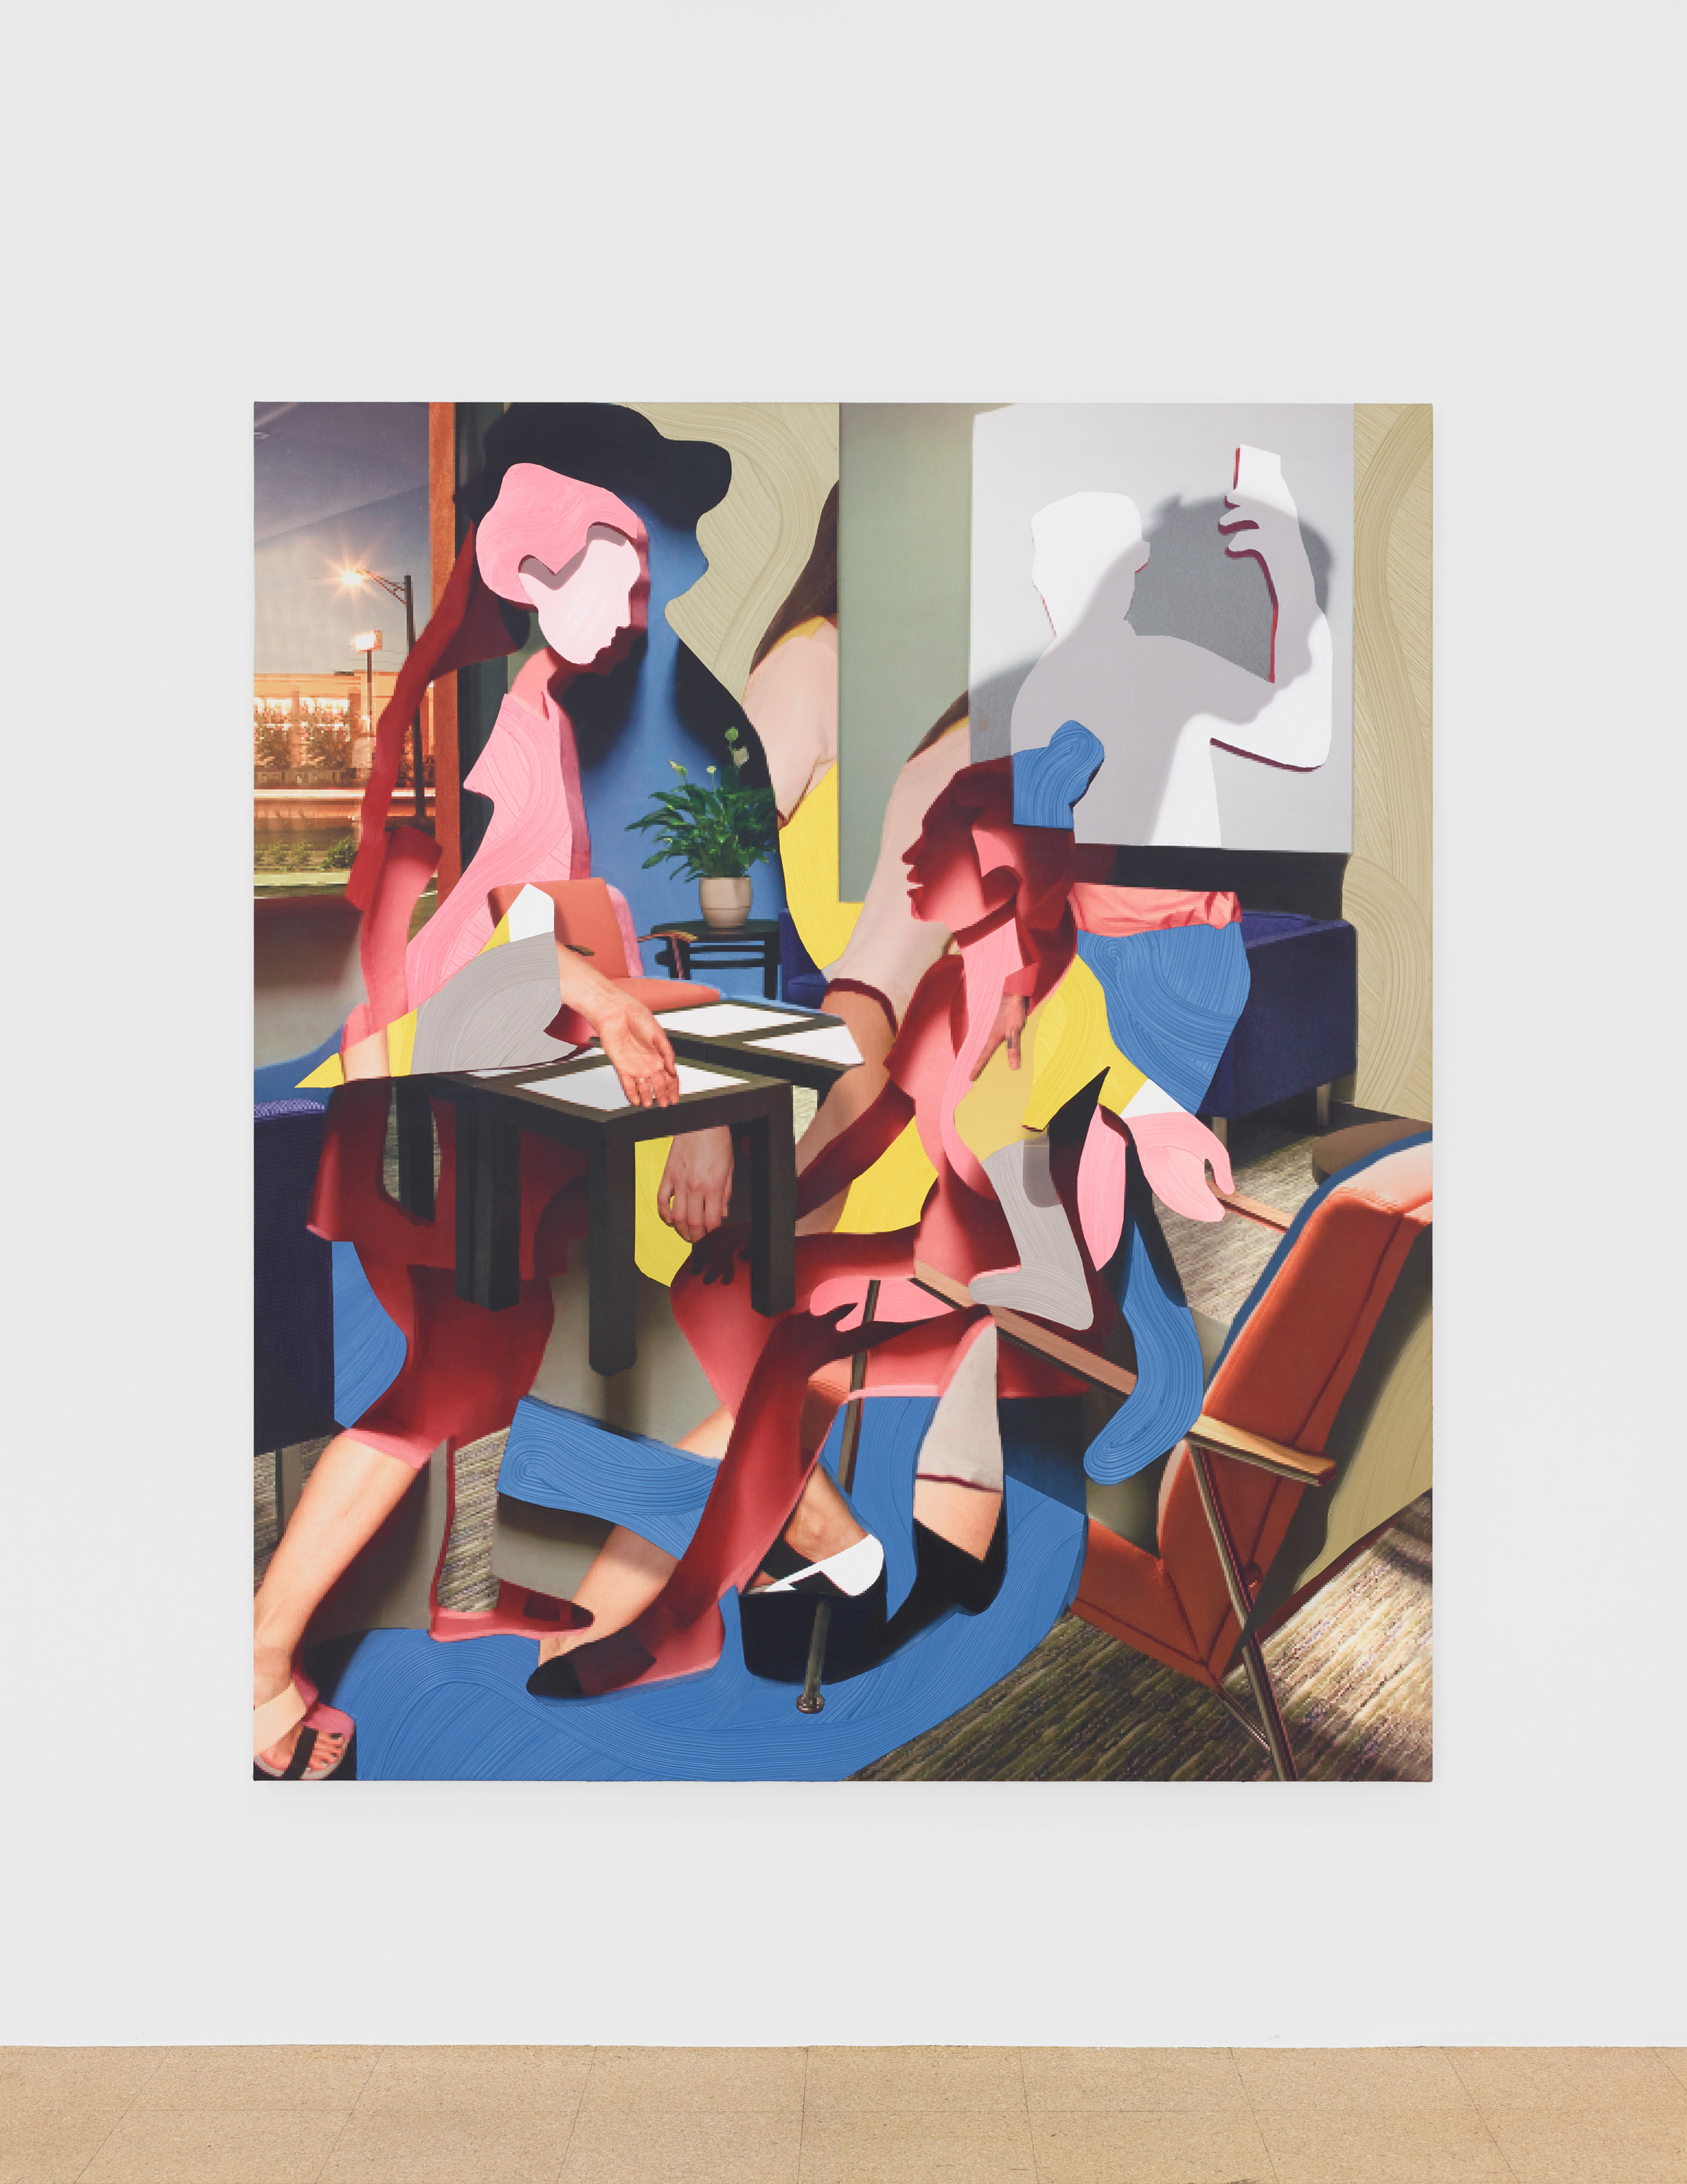 Pieter Shcoolwerth, Personality Inventory #5, 2018, Oil, acrylic, and giclee print on canvas